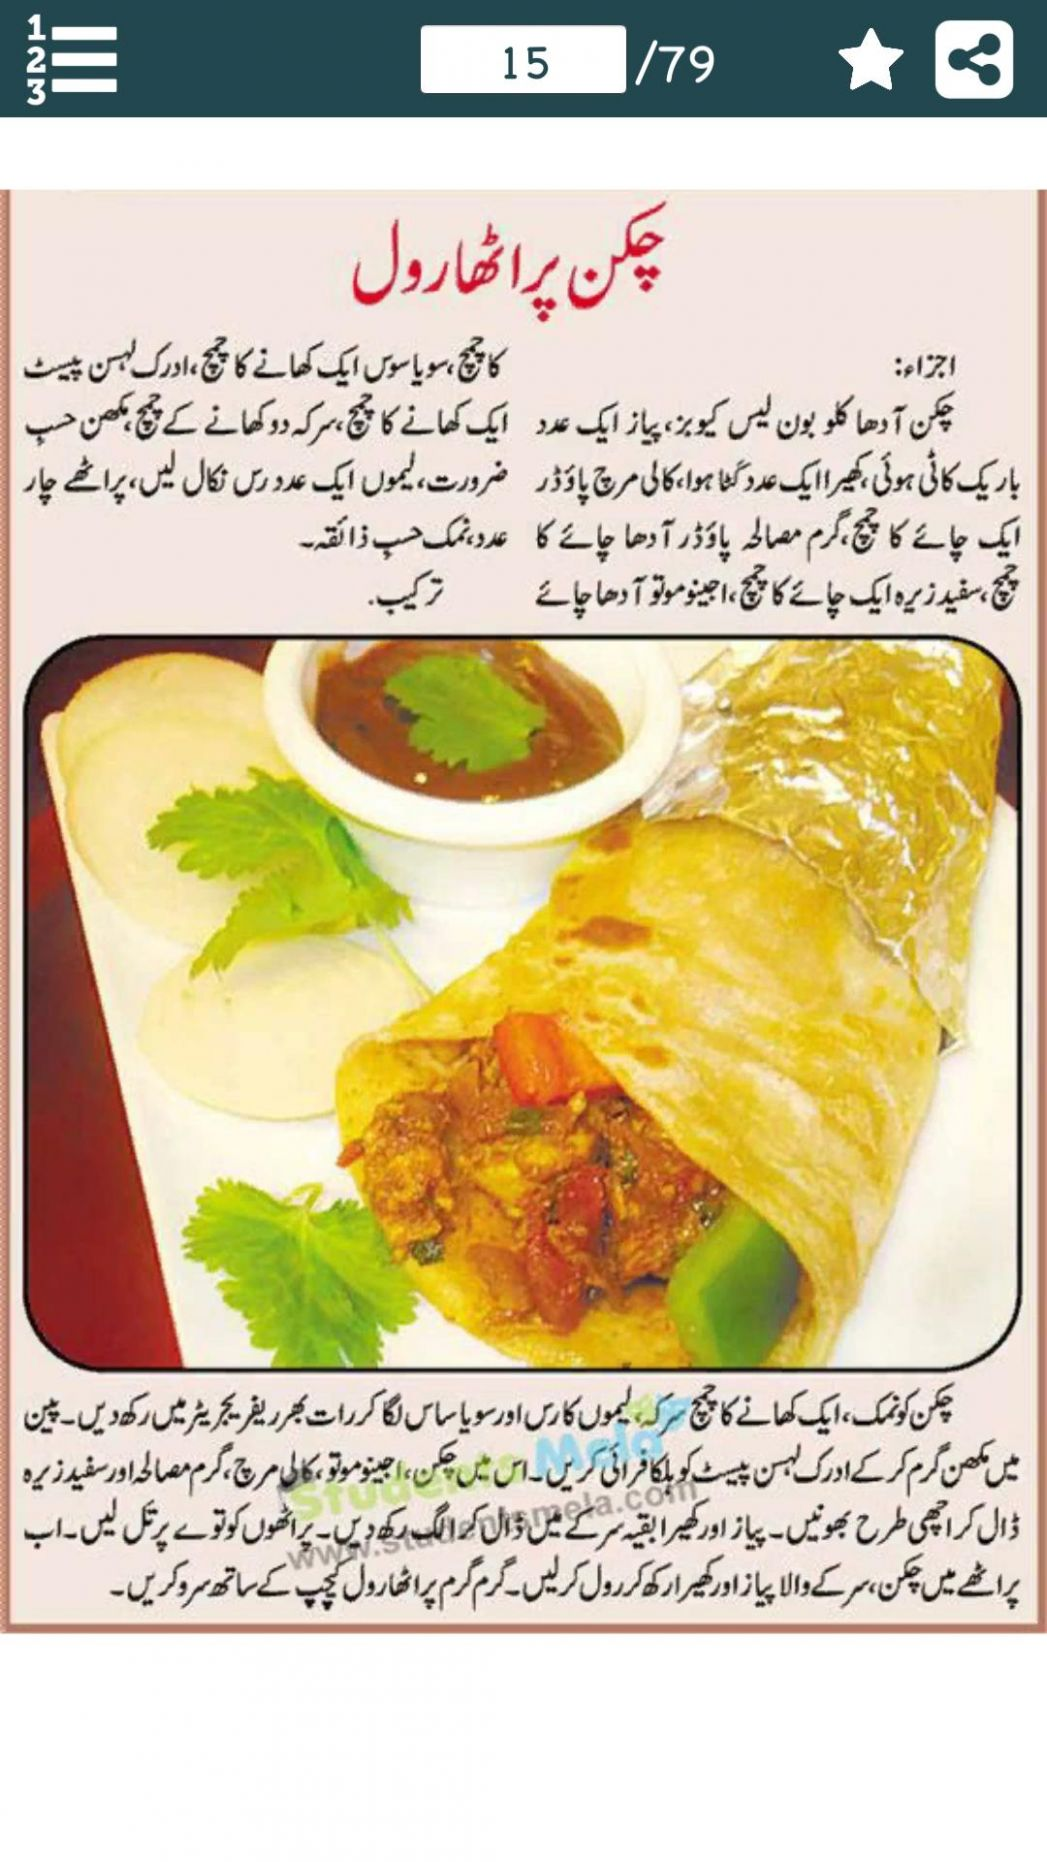 Pakistani Easy Recipes in URDU for Android - APK Download - Simple Recipes In Urdu